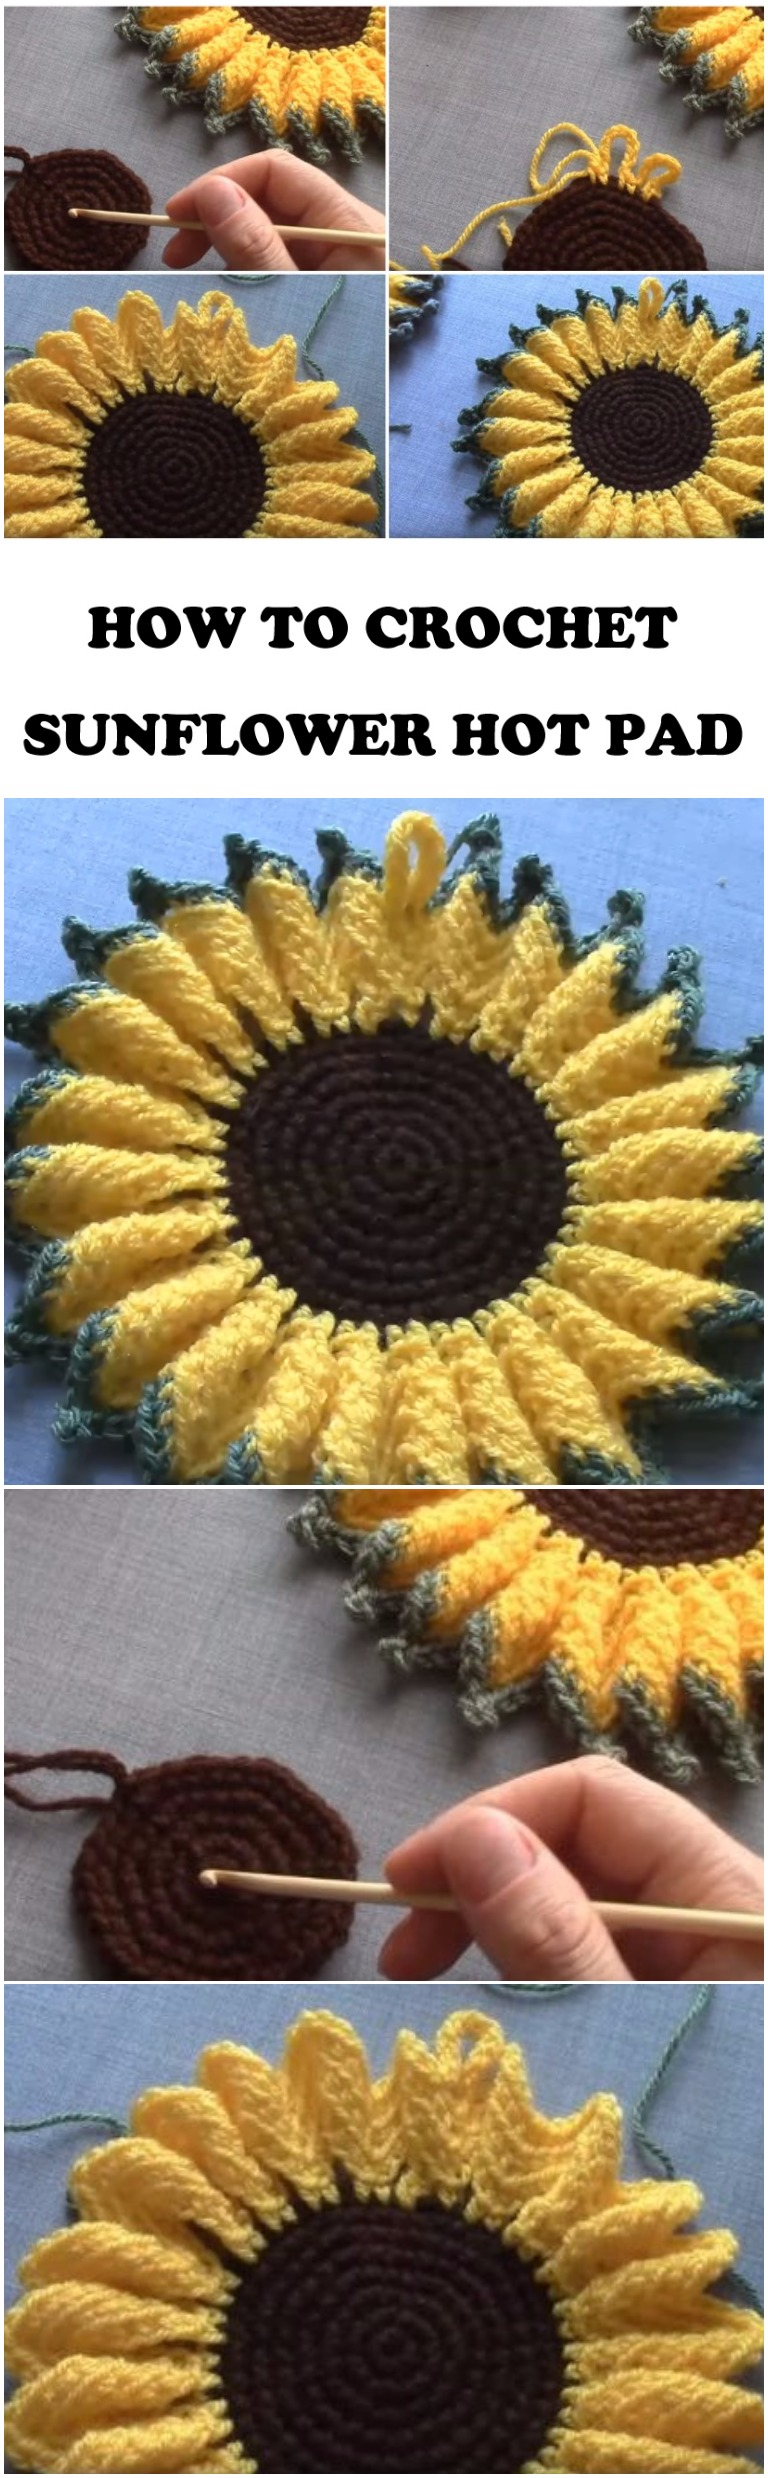 Crochet Sunflower Hot Pad Step By Step